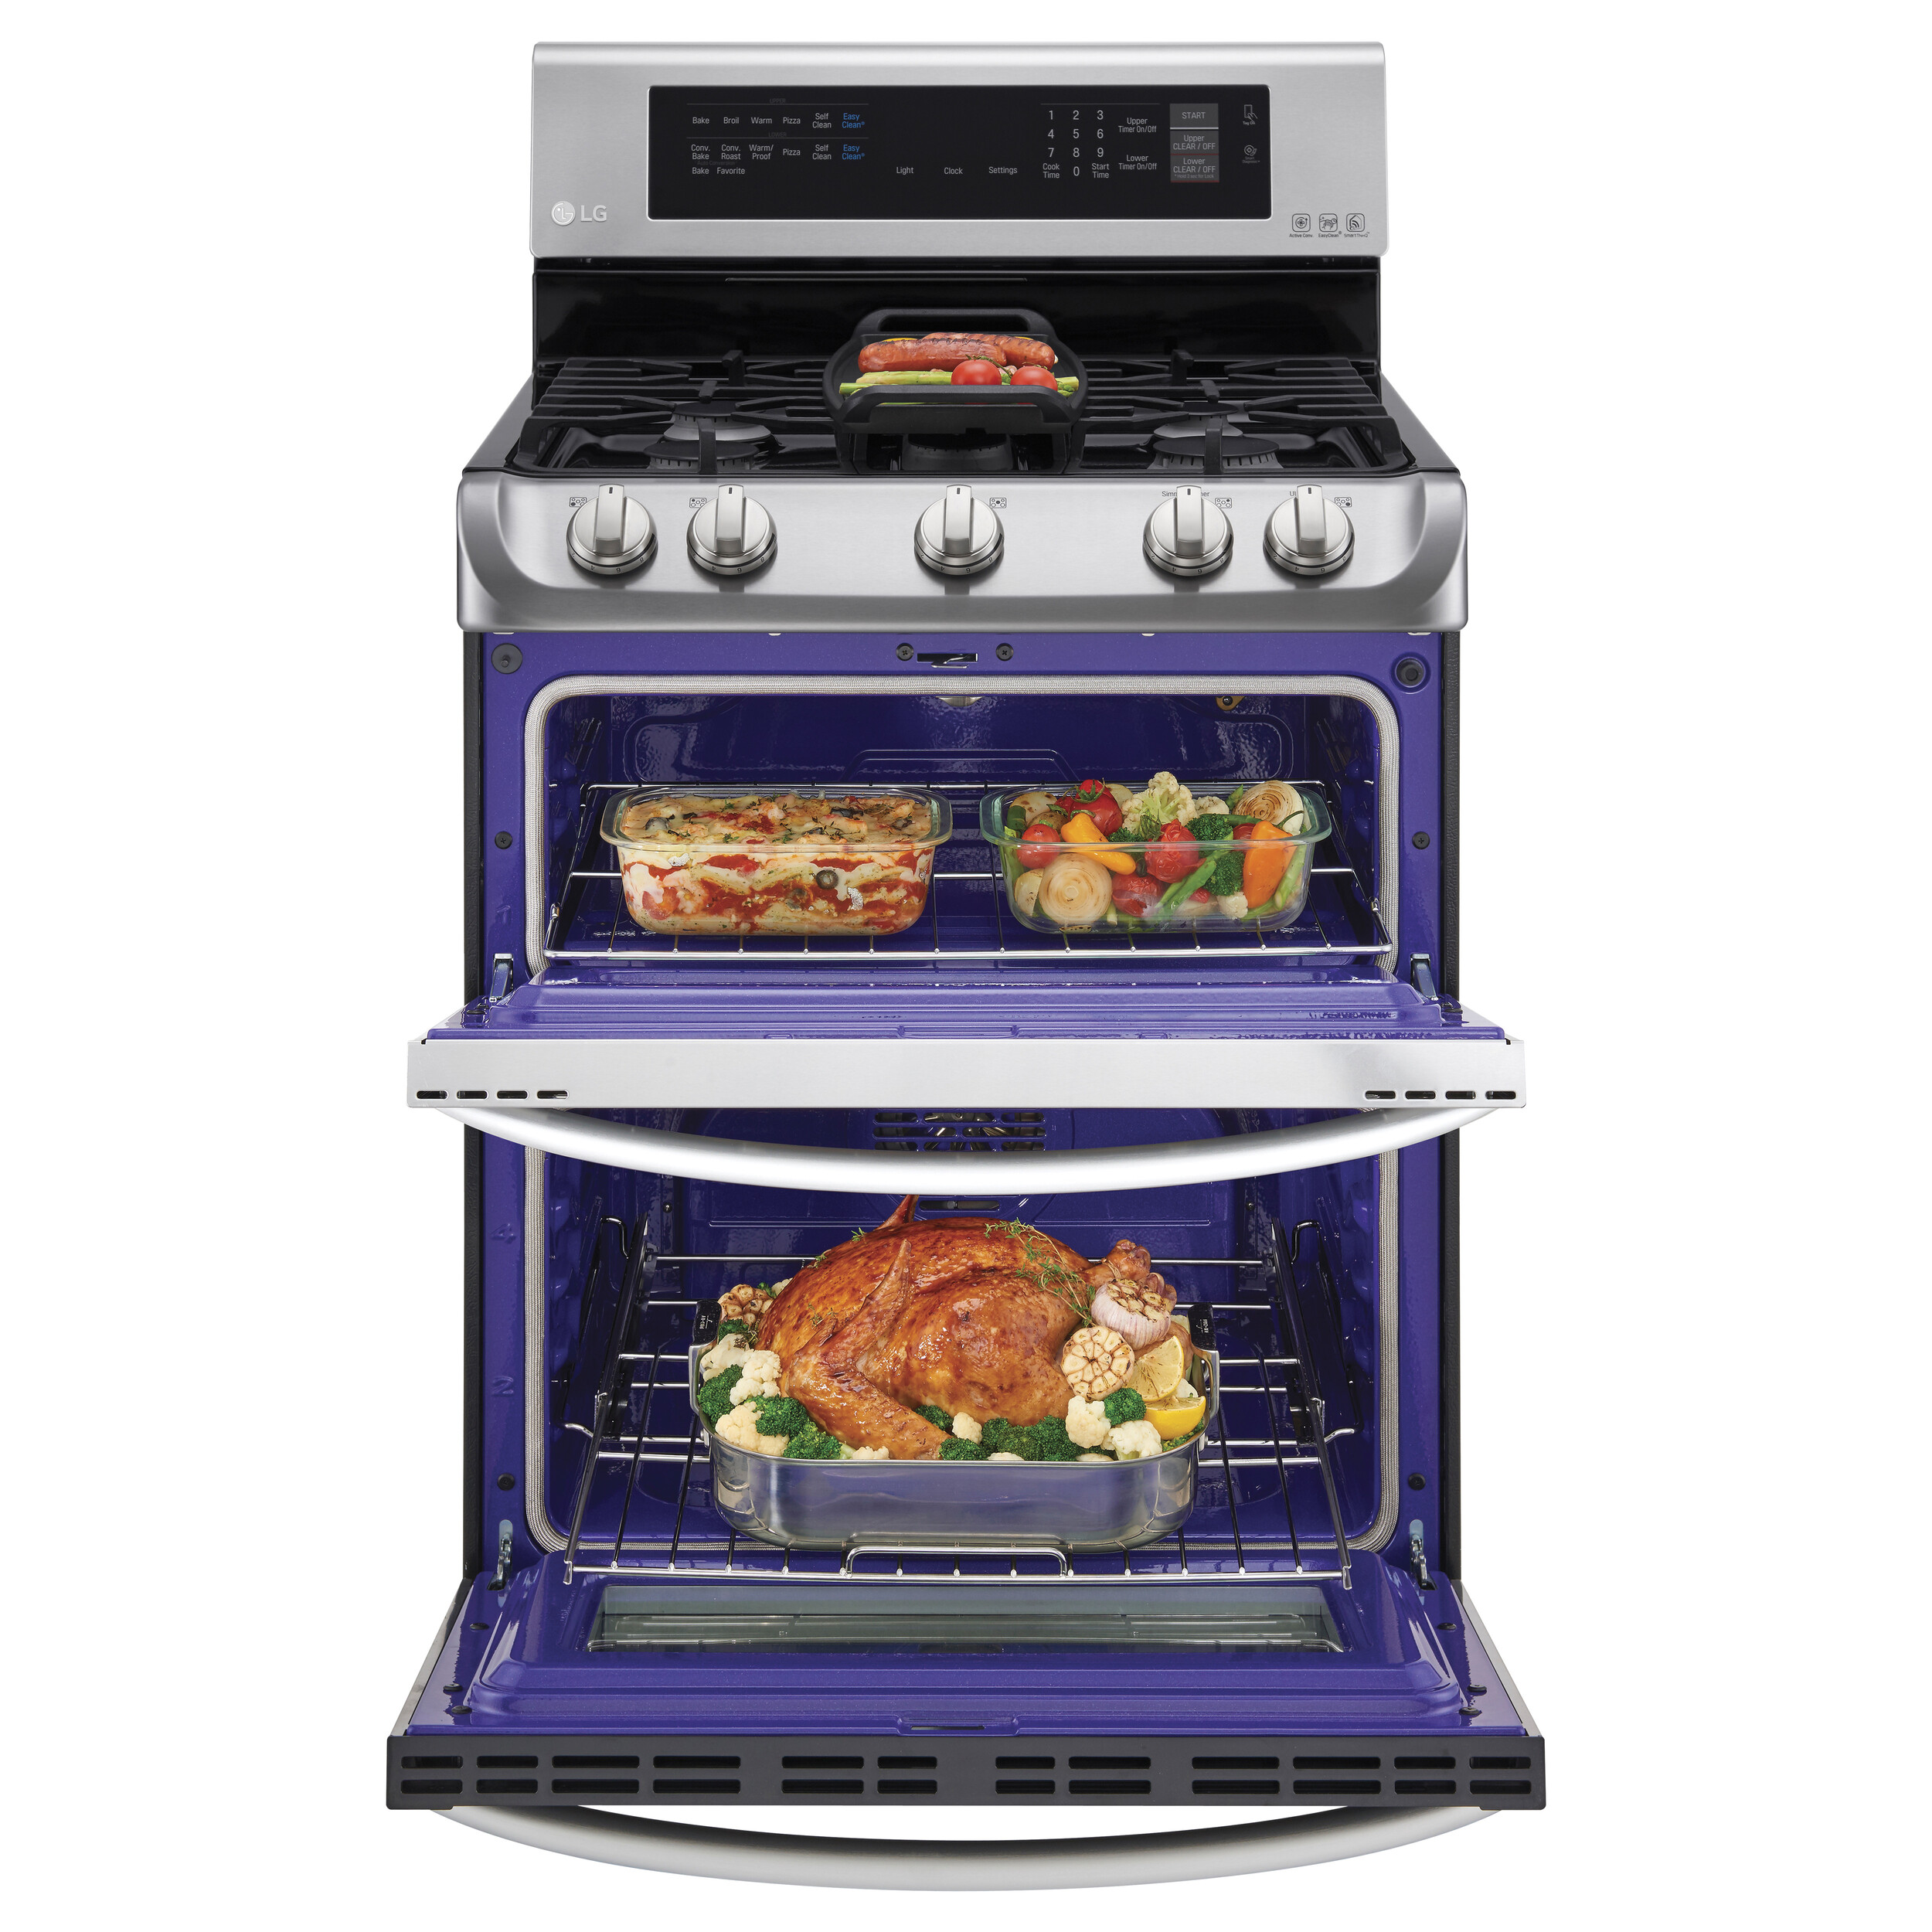 Just in Time for the Holidays -- You'll Love the LG ProBake Double Oven